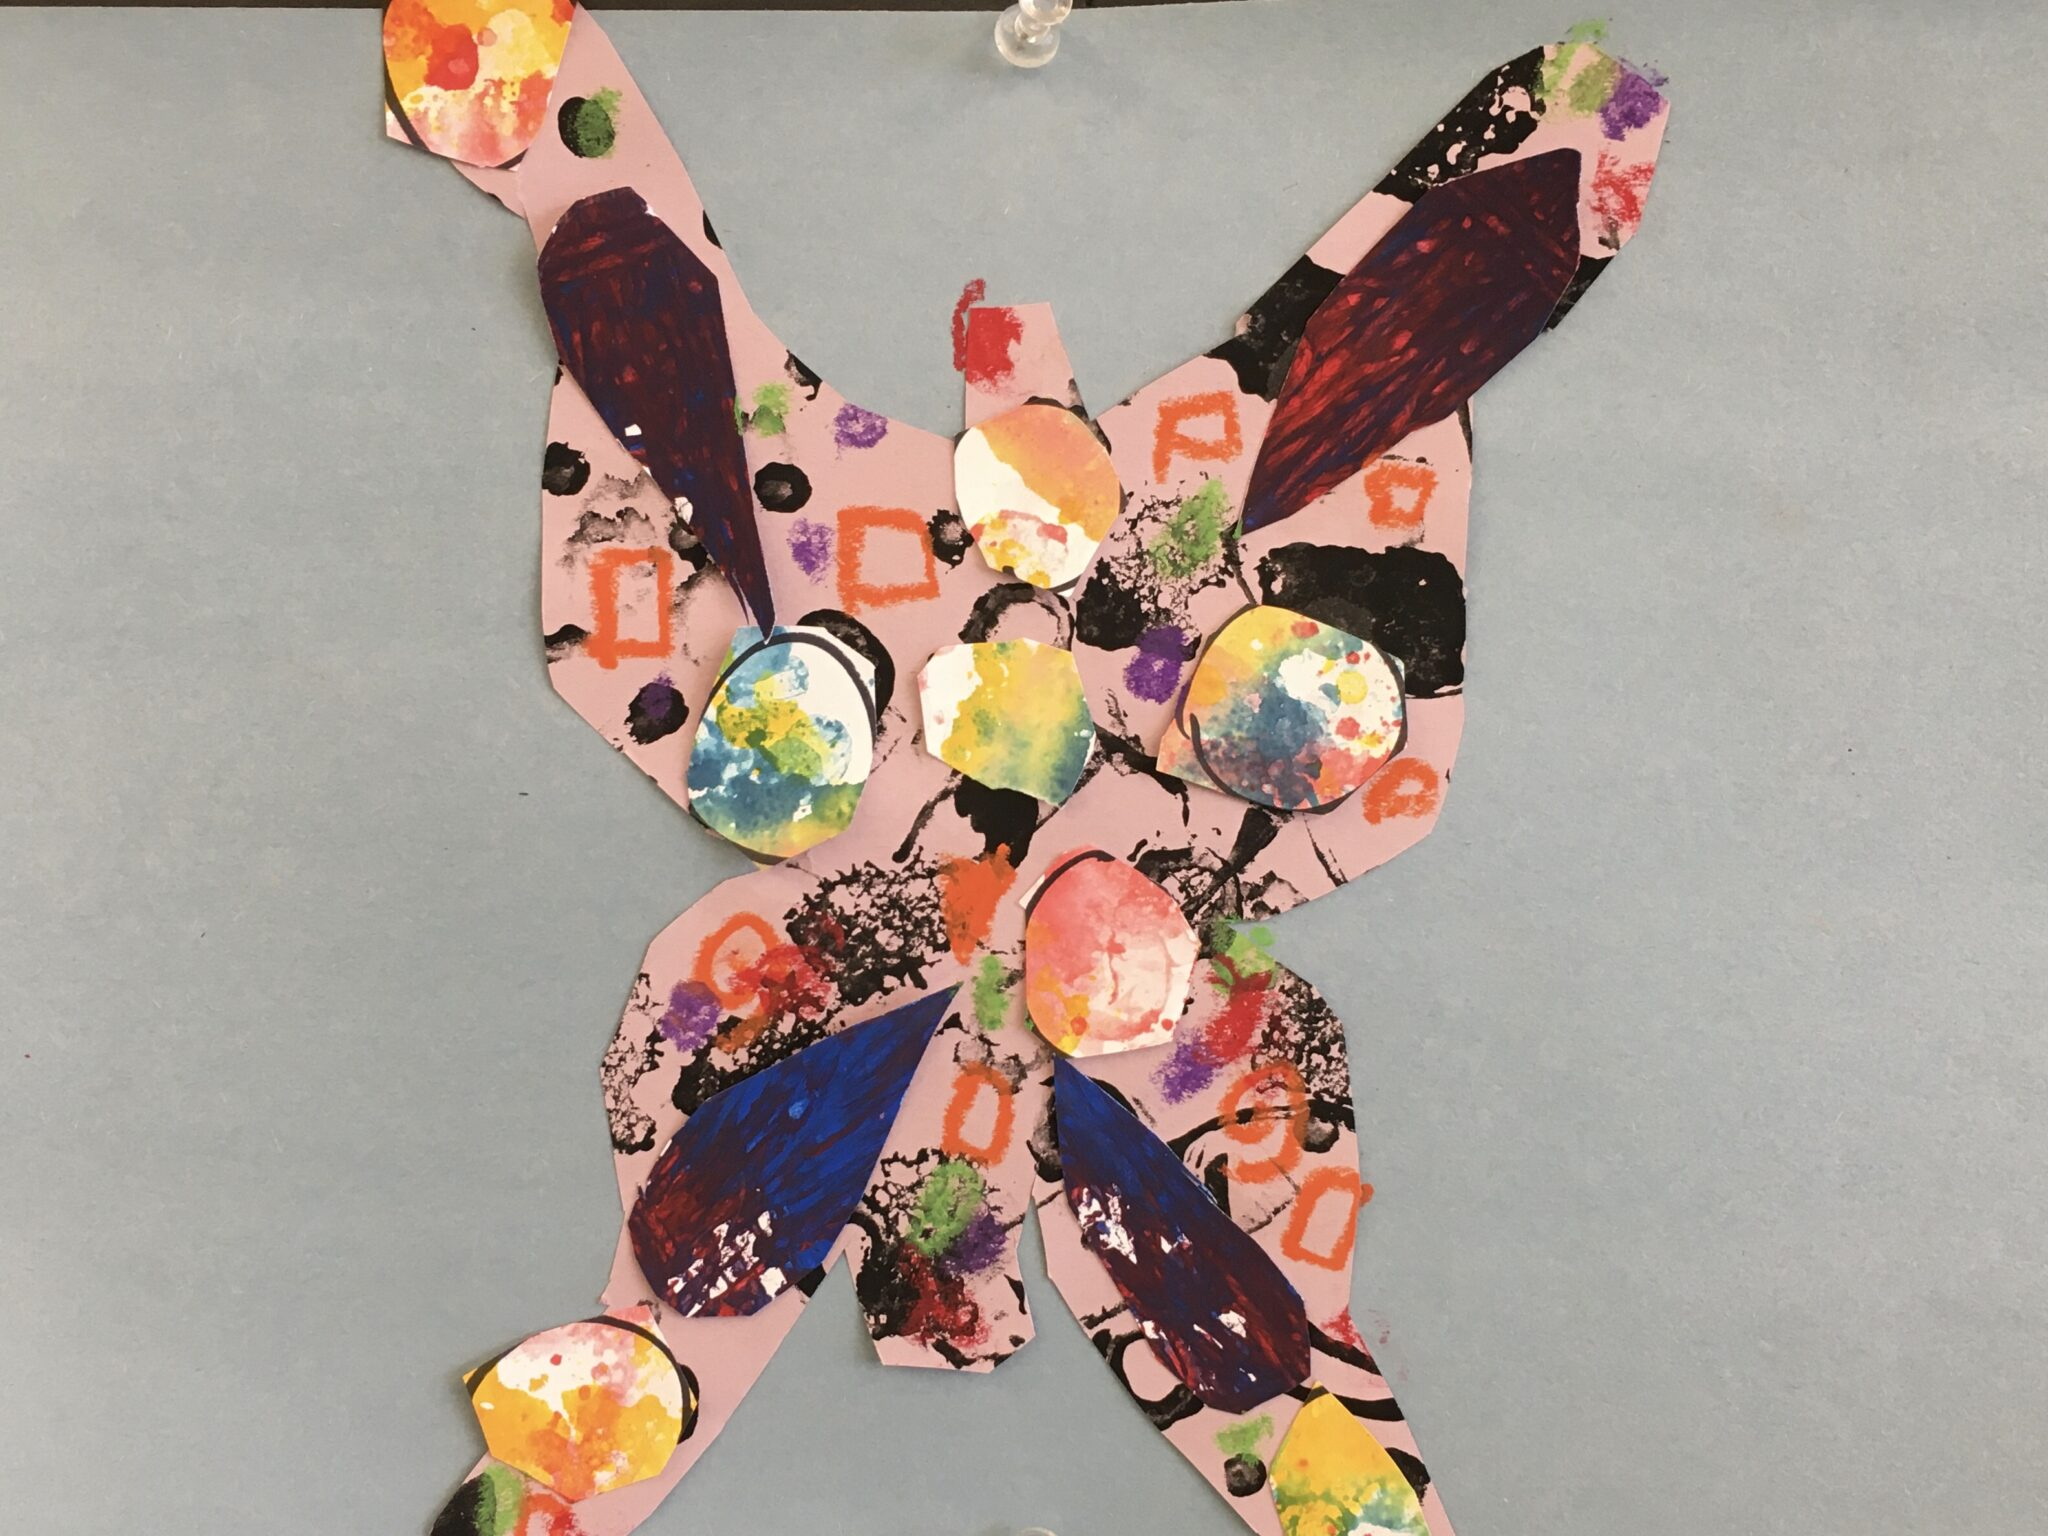 butterflies inspired by Eric Carle, author